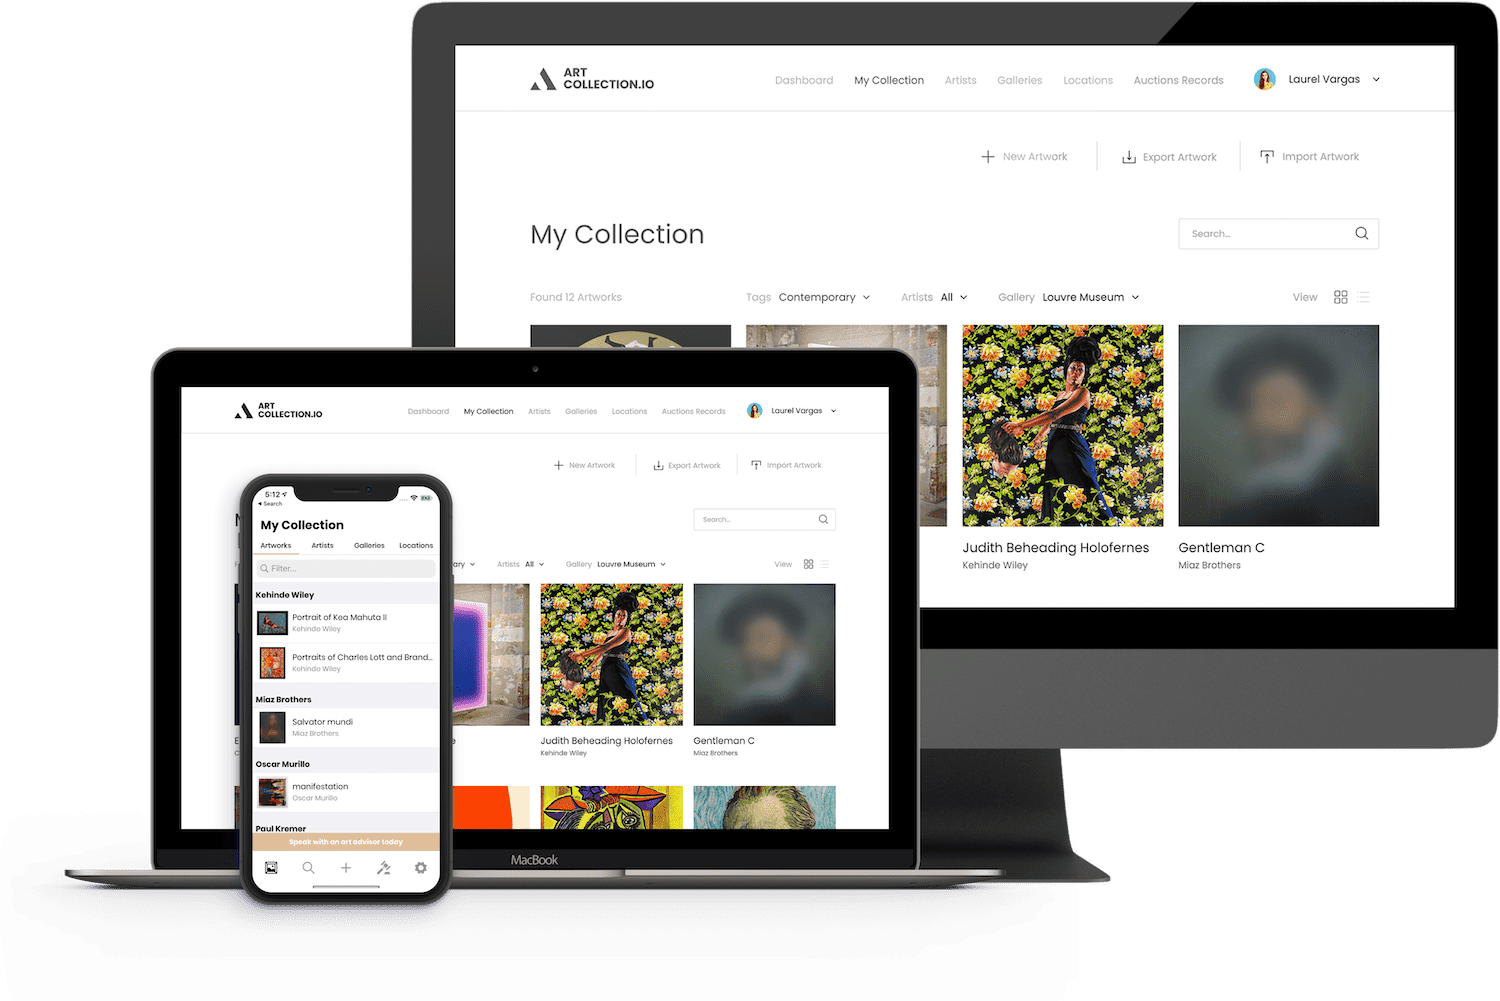 A computer, tablet, and phone showing the native ArtCollection.io applications.